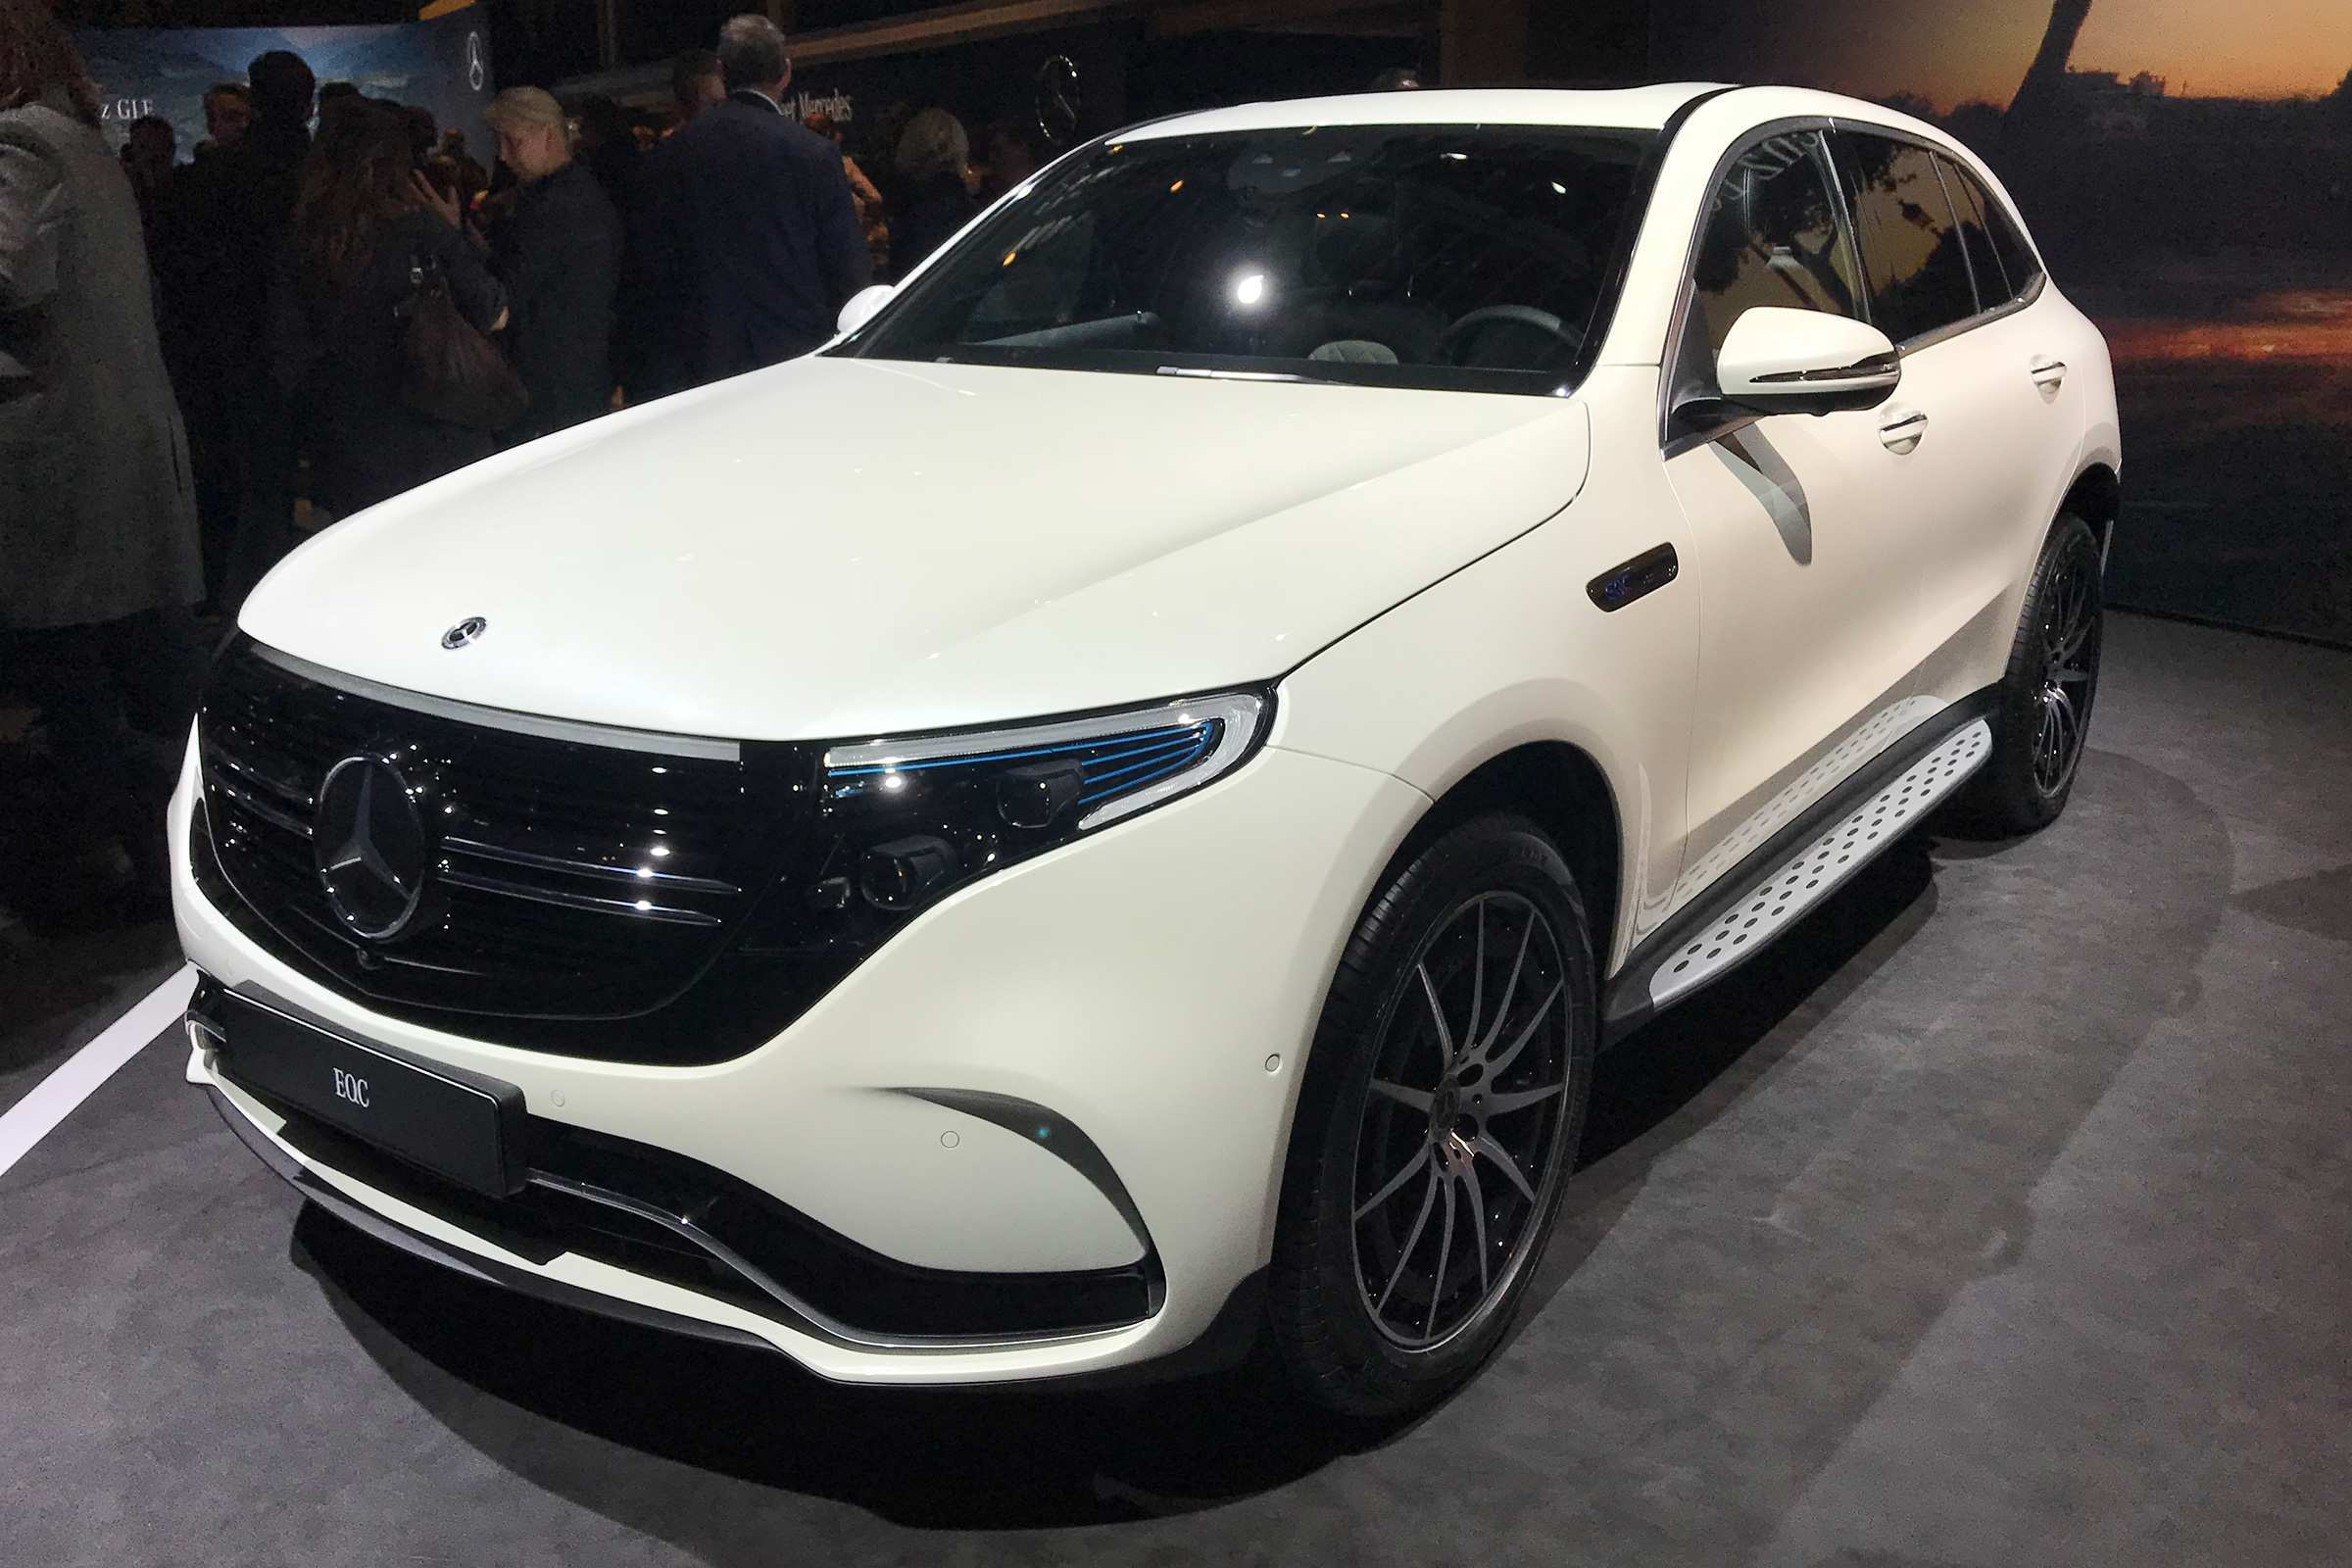 40 Best Review The Mercedes Eq 2019 Price Configurations with The Mercedes Eq 2019 Price